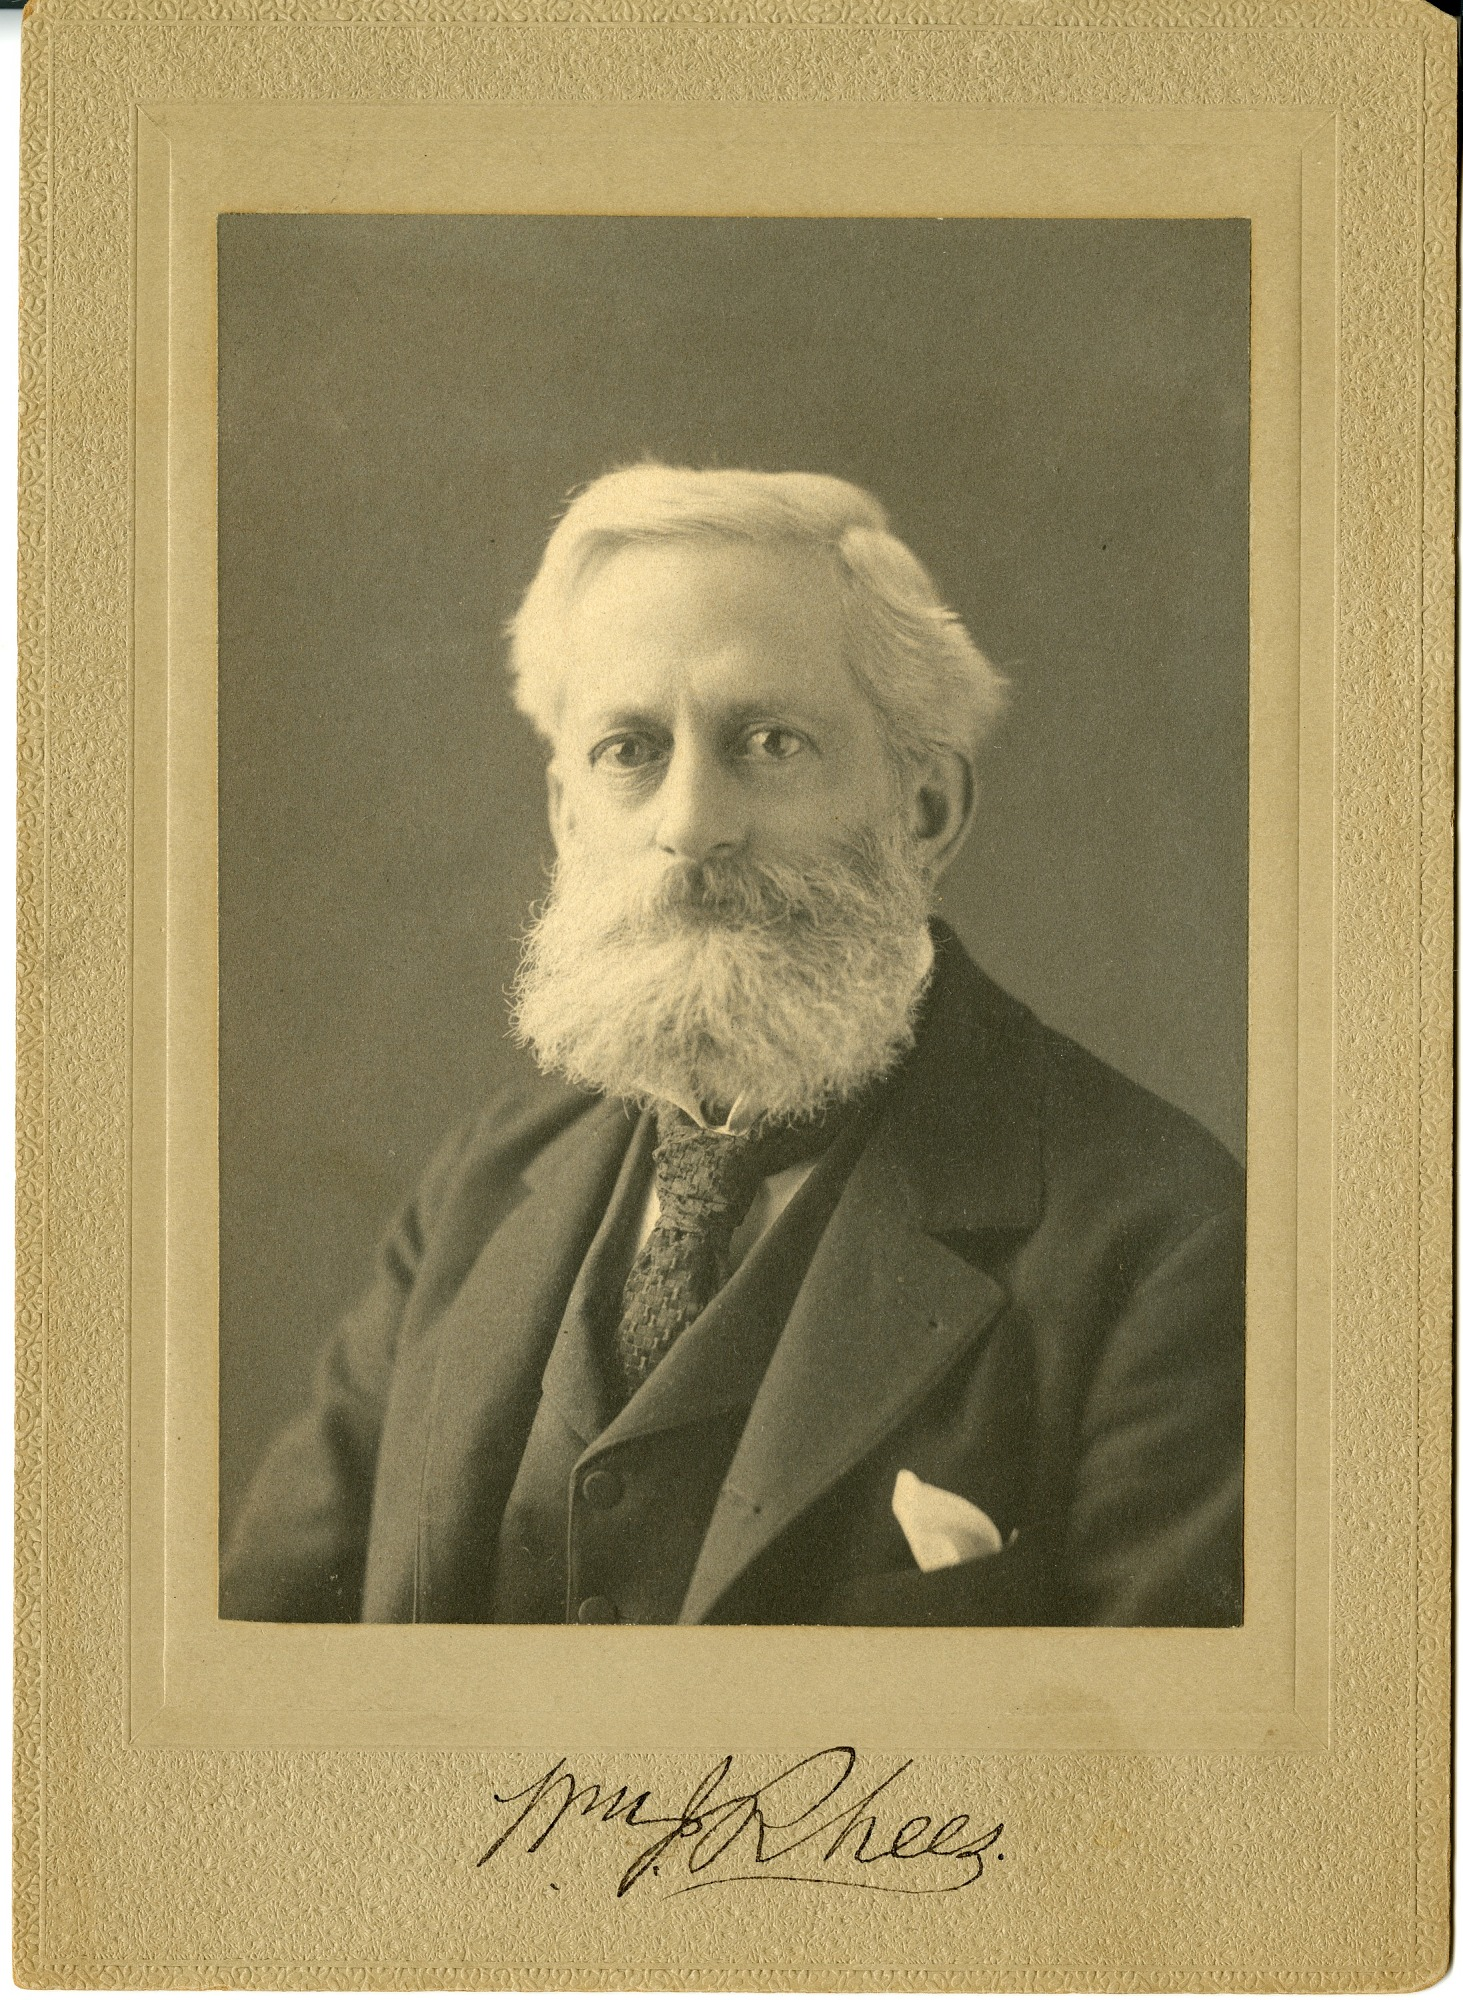 William J. Rhees, by Unknown, 1893, Smithsonian Archives - History Div, SIA2011-1380 and 83-16174.